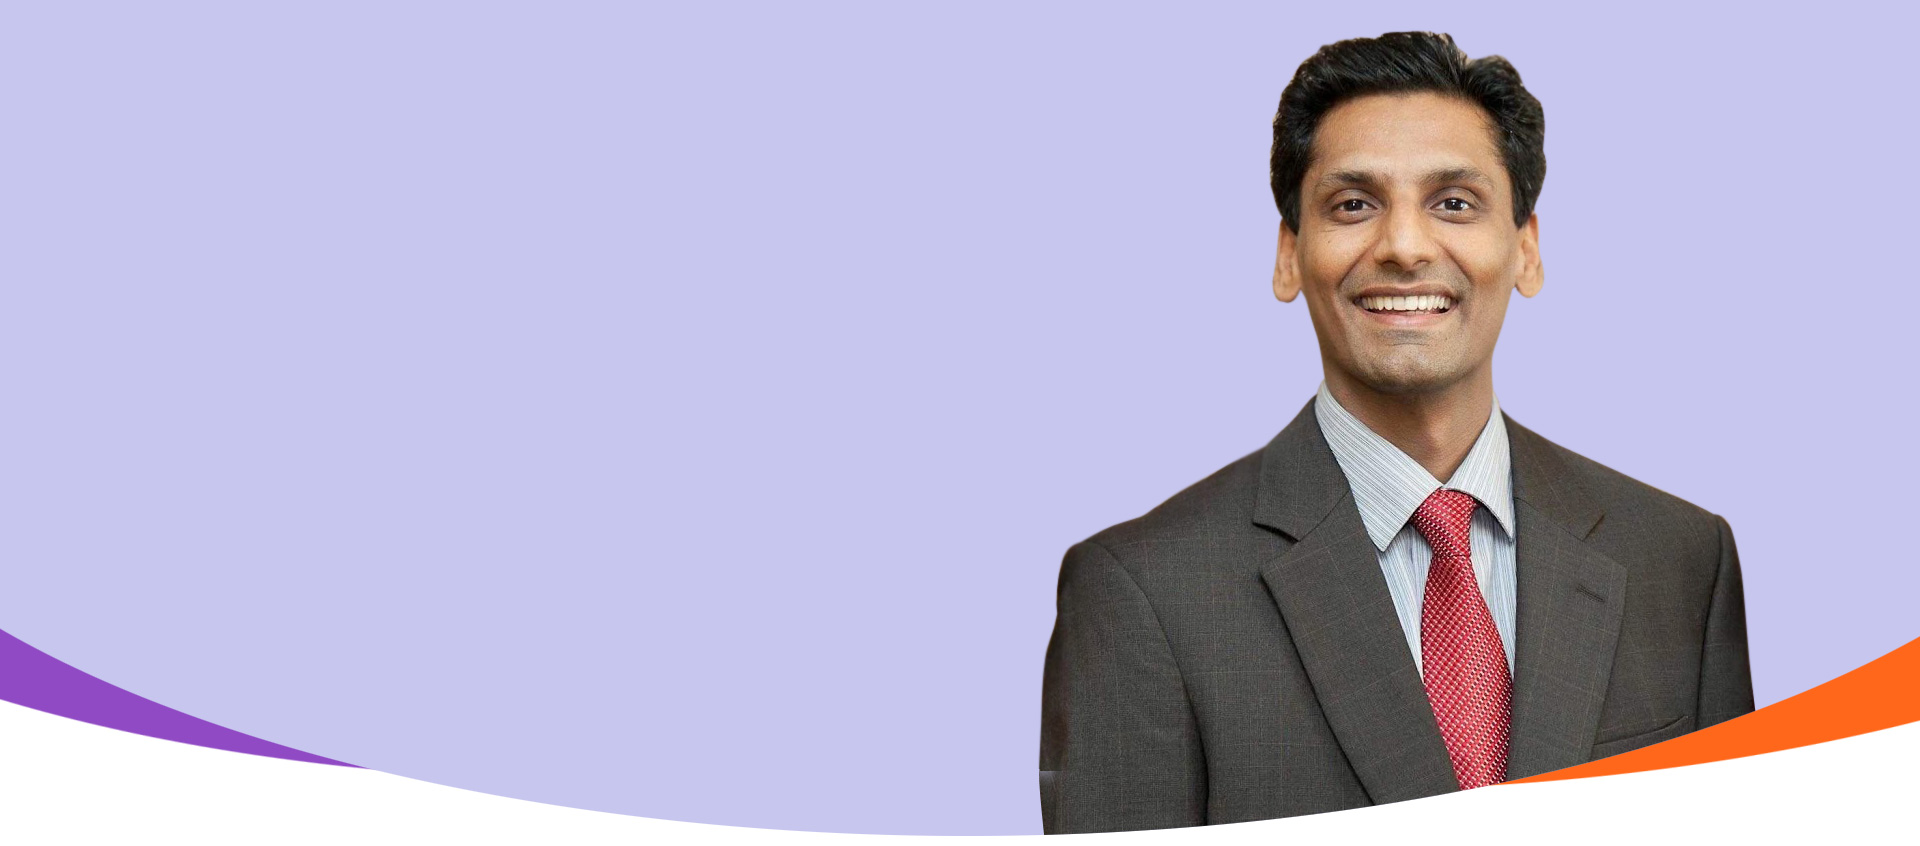 Extensive Experience of Dr. Saleem